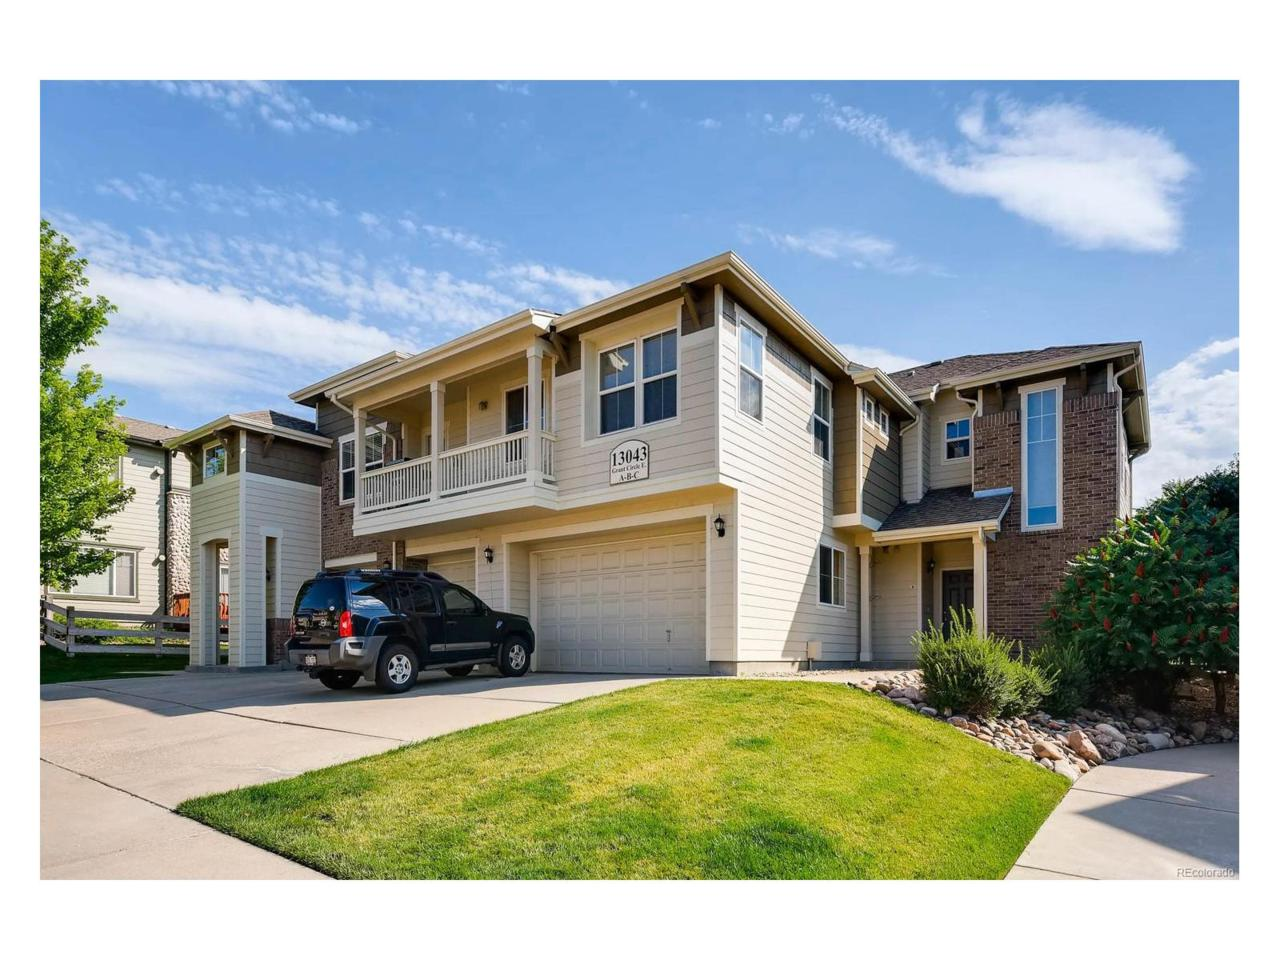 13043 Grant Circle C, Thornton, CO 80241 (MLS #4484976) :: 8z Real Estate